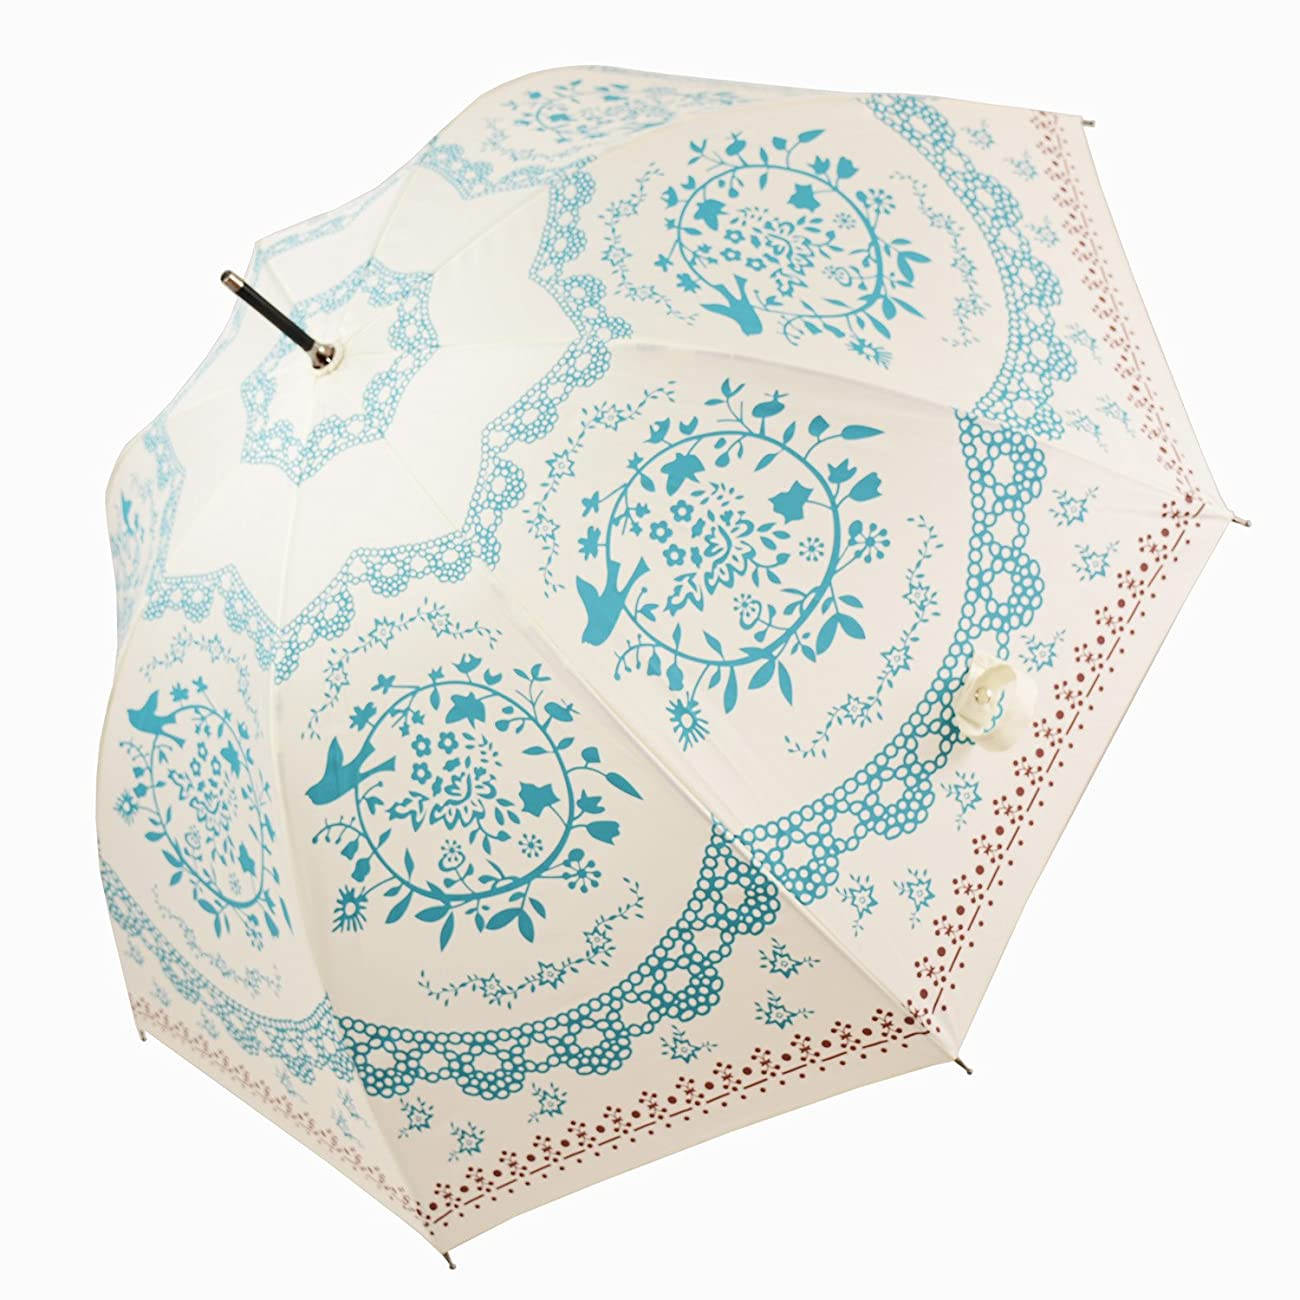 Kung Fu Smith Vintage Flower Totem Print Bubble Dome Rain Umbrella 1